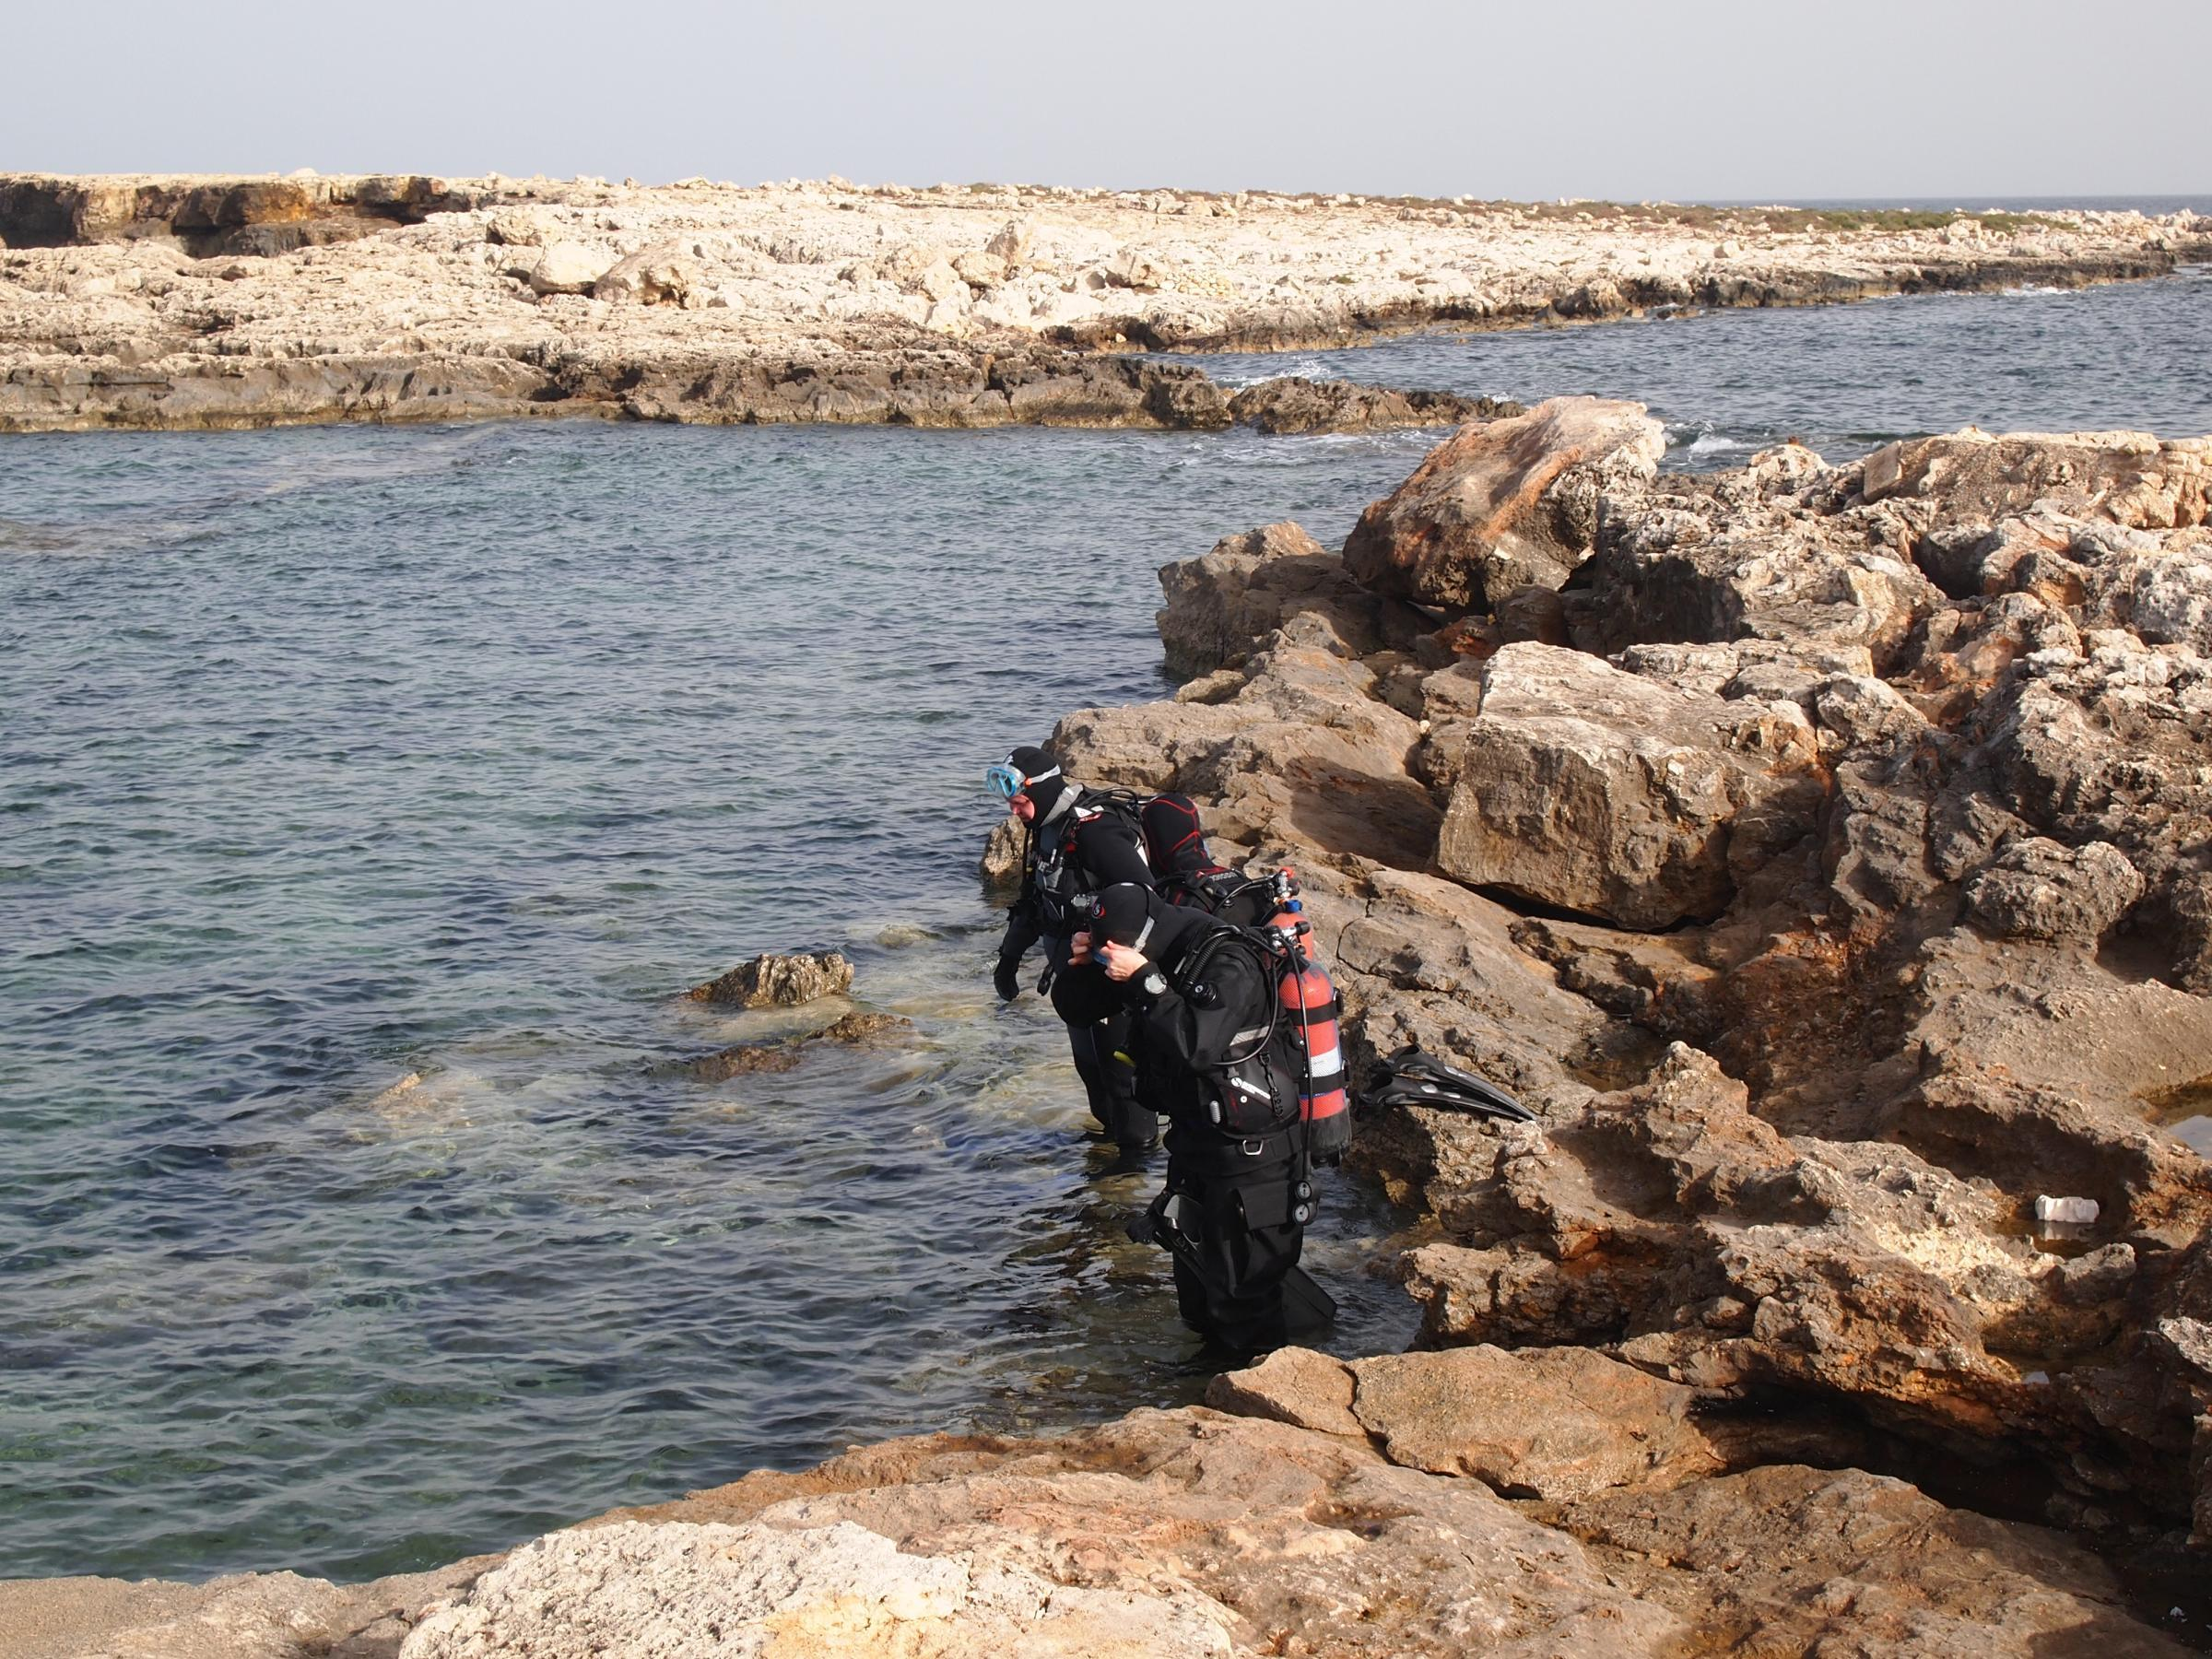 Divers entering the Qawra Point pool